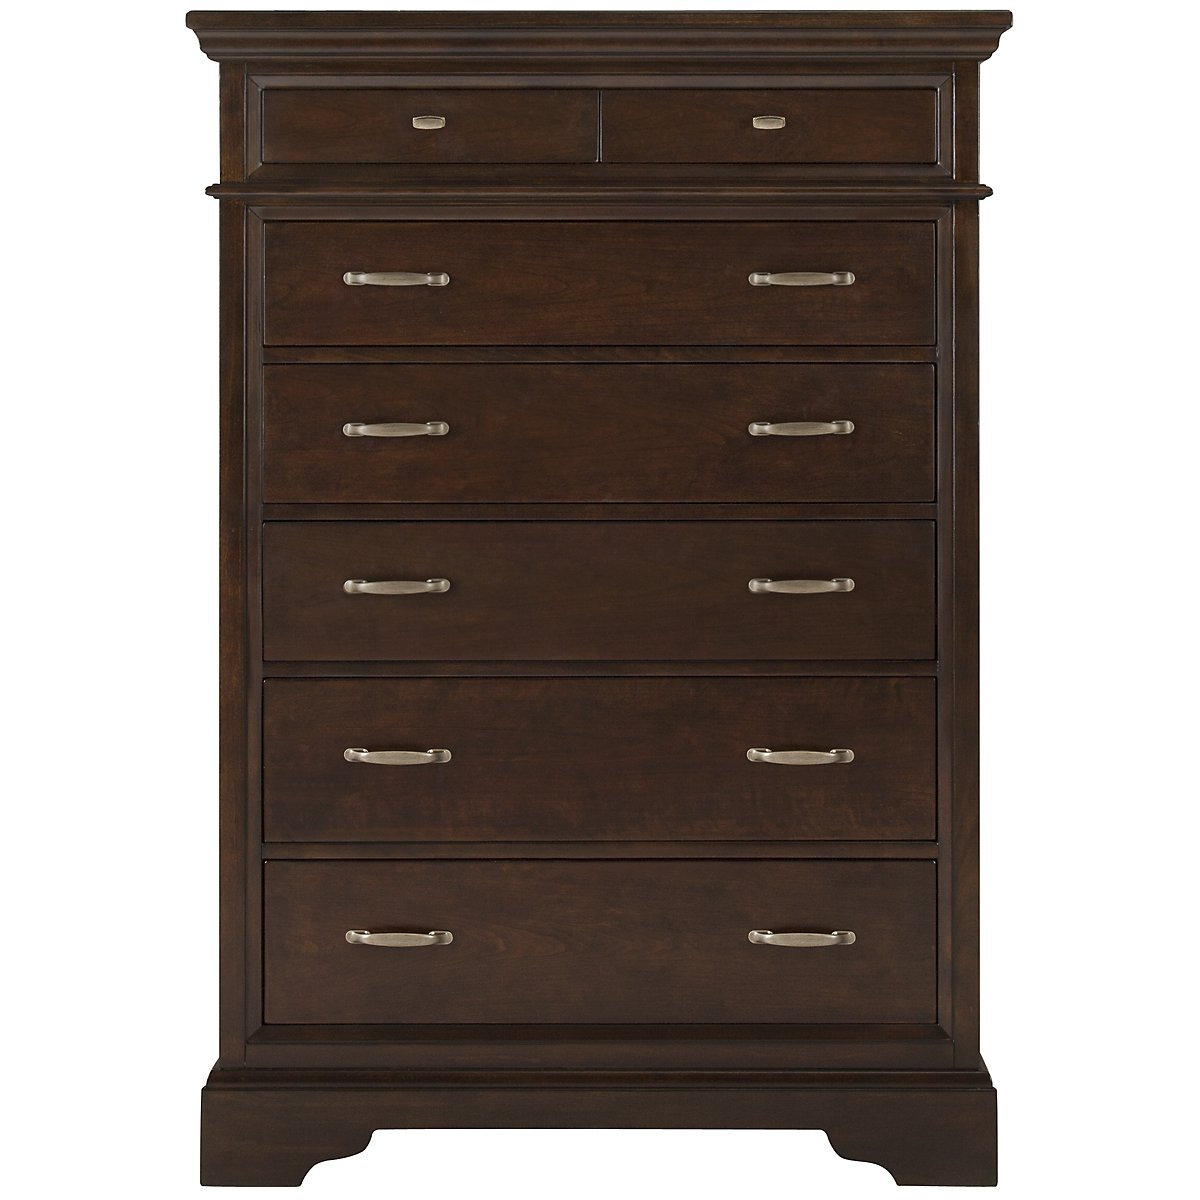 Canyon Dark Tone Drawer Chest